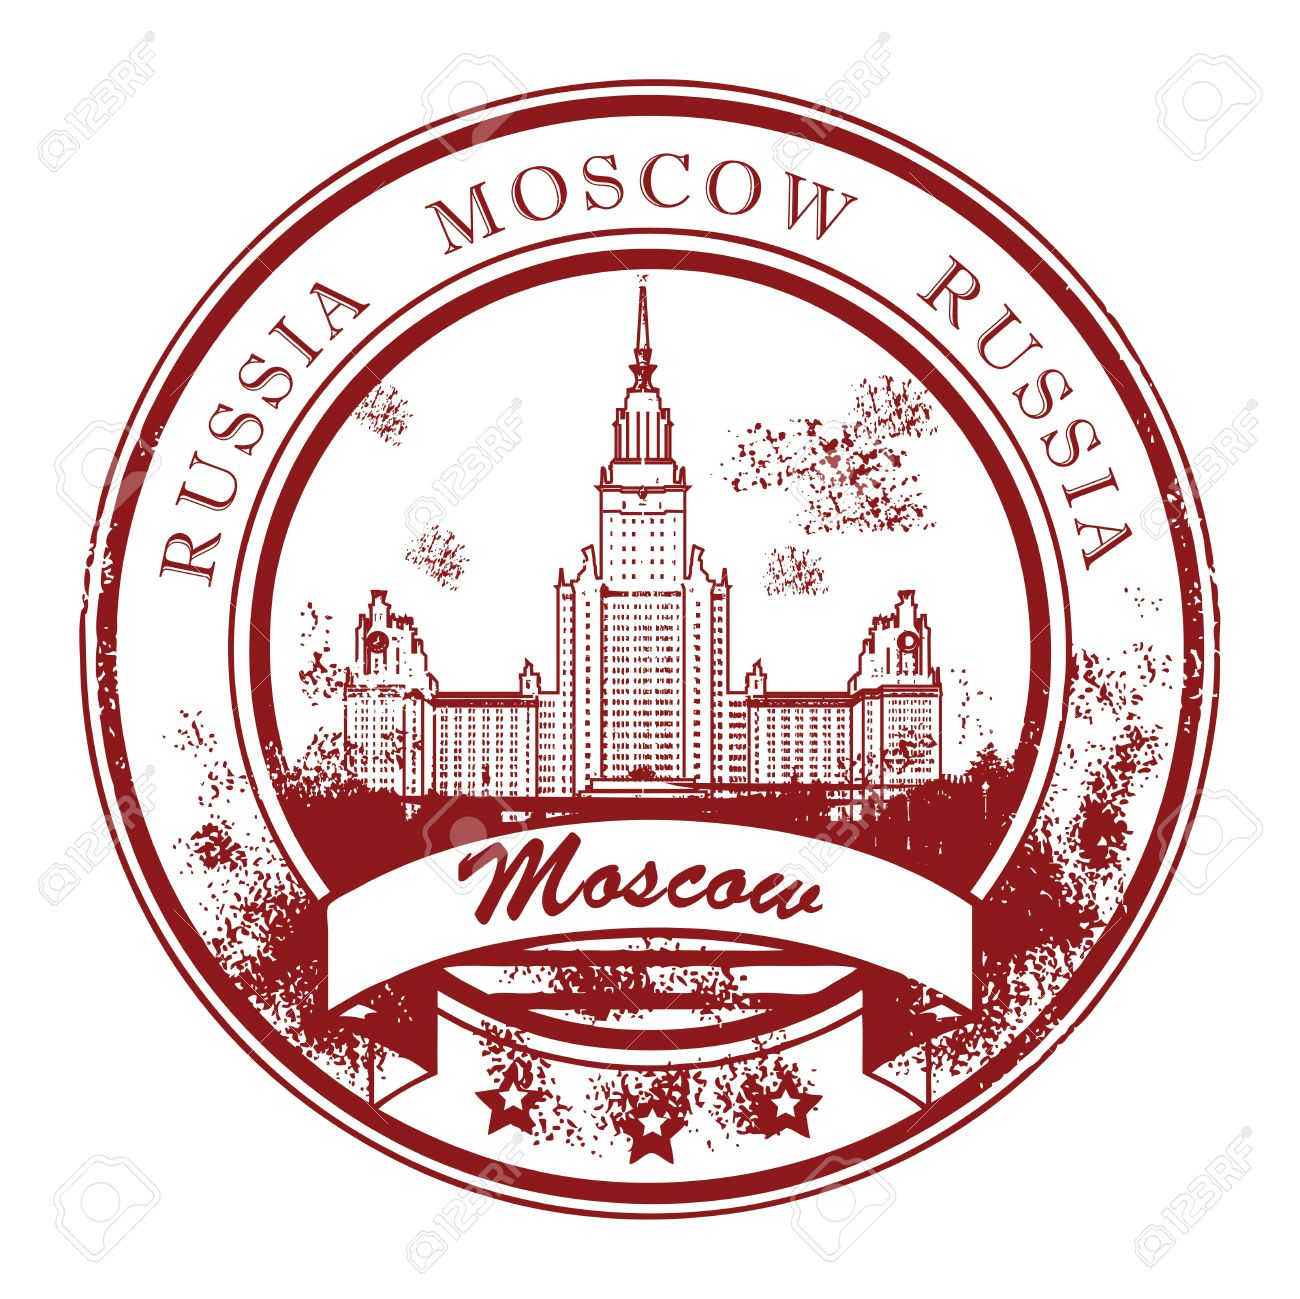 Grunge Rubber Stamp With Moscow State University And The Words.